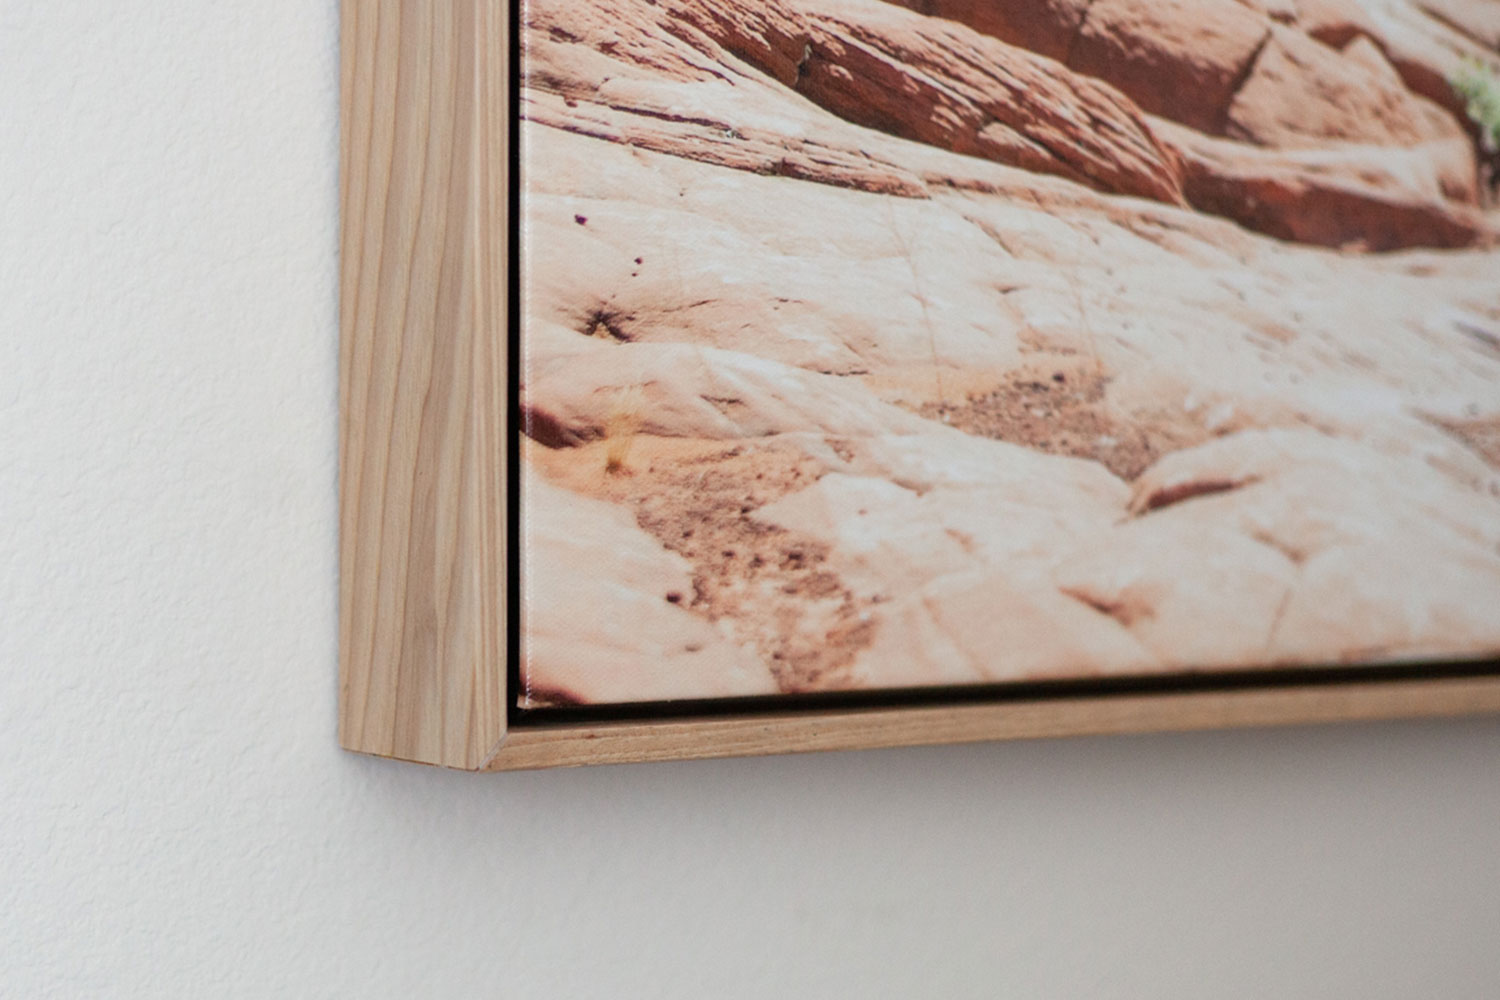 Corner detail of a gallery wrapped canvas photography print by Laura Leigh Images